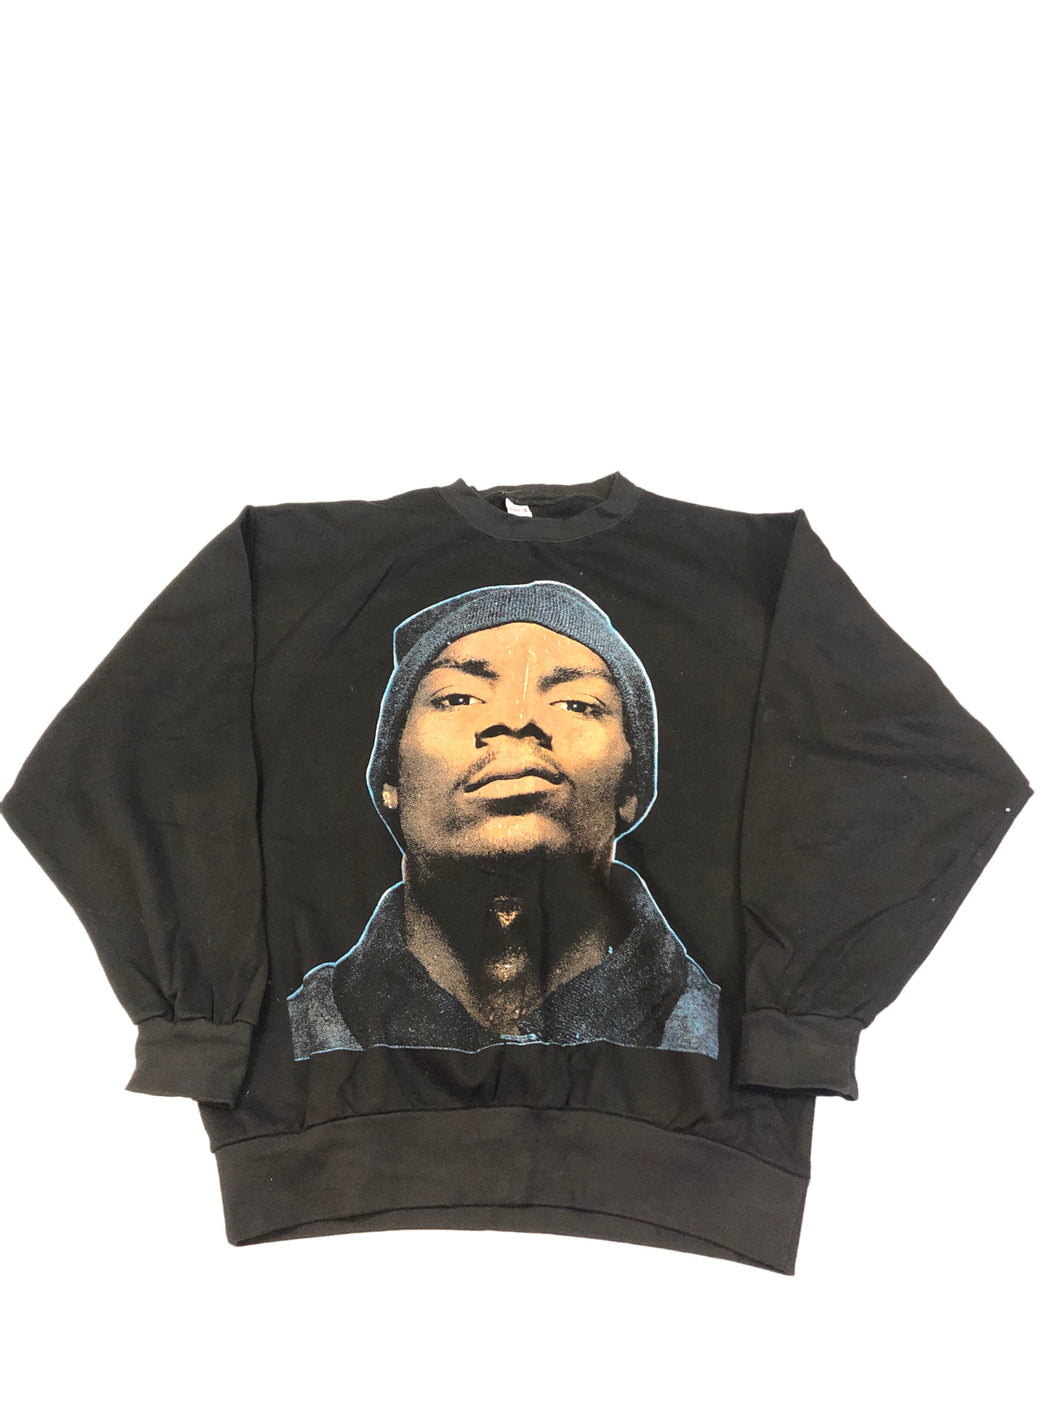 Snoop Dogg Doggystyle Bootleg Crewneck